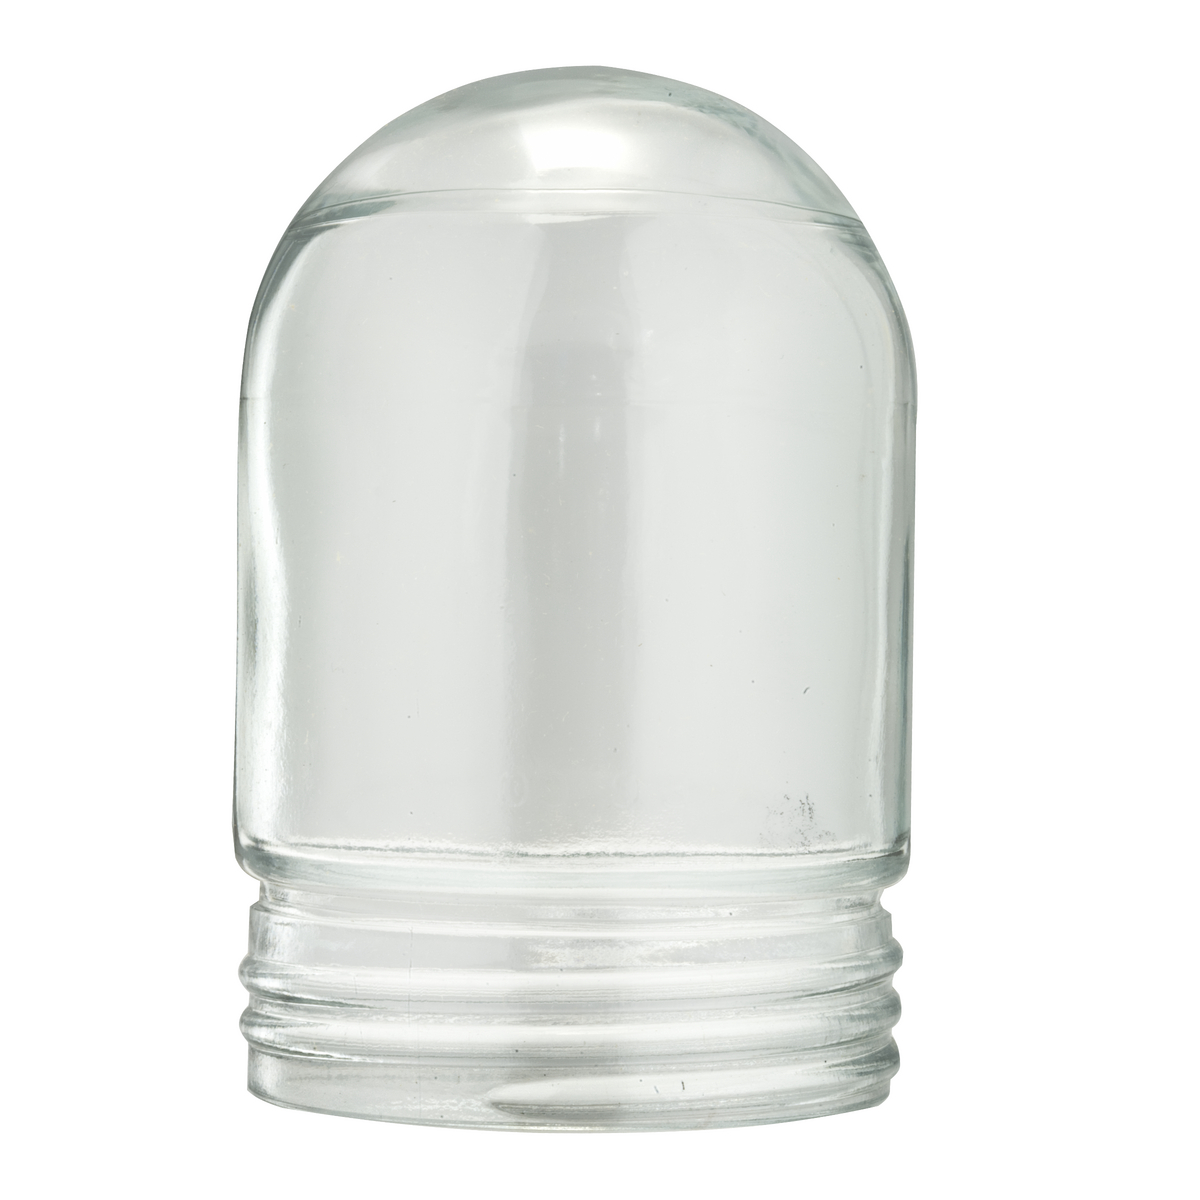 REPLACEMENT GLASS GLOBE 3-TIER (5884-8)